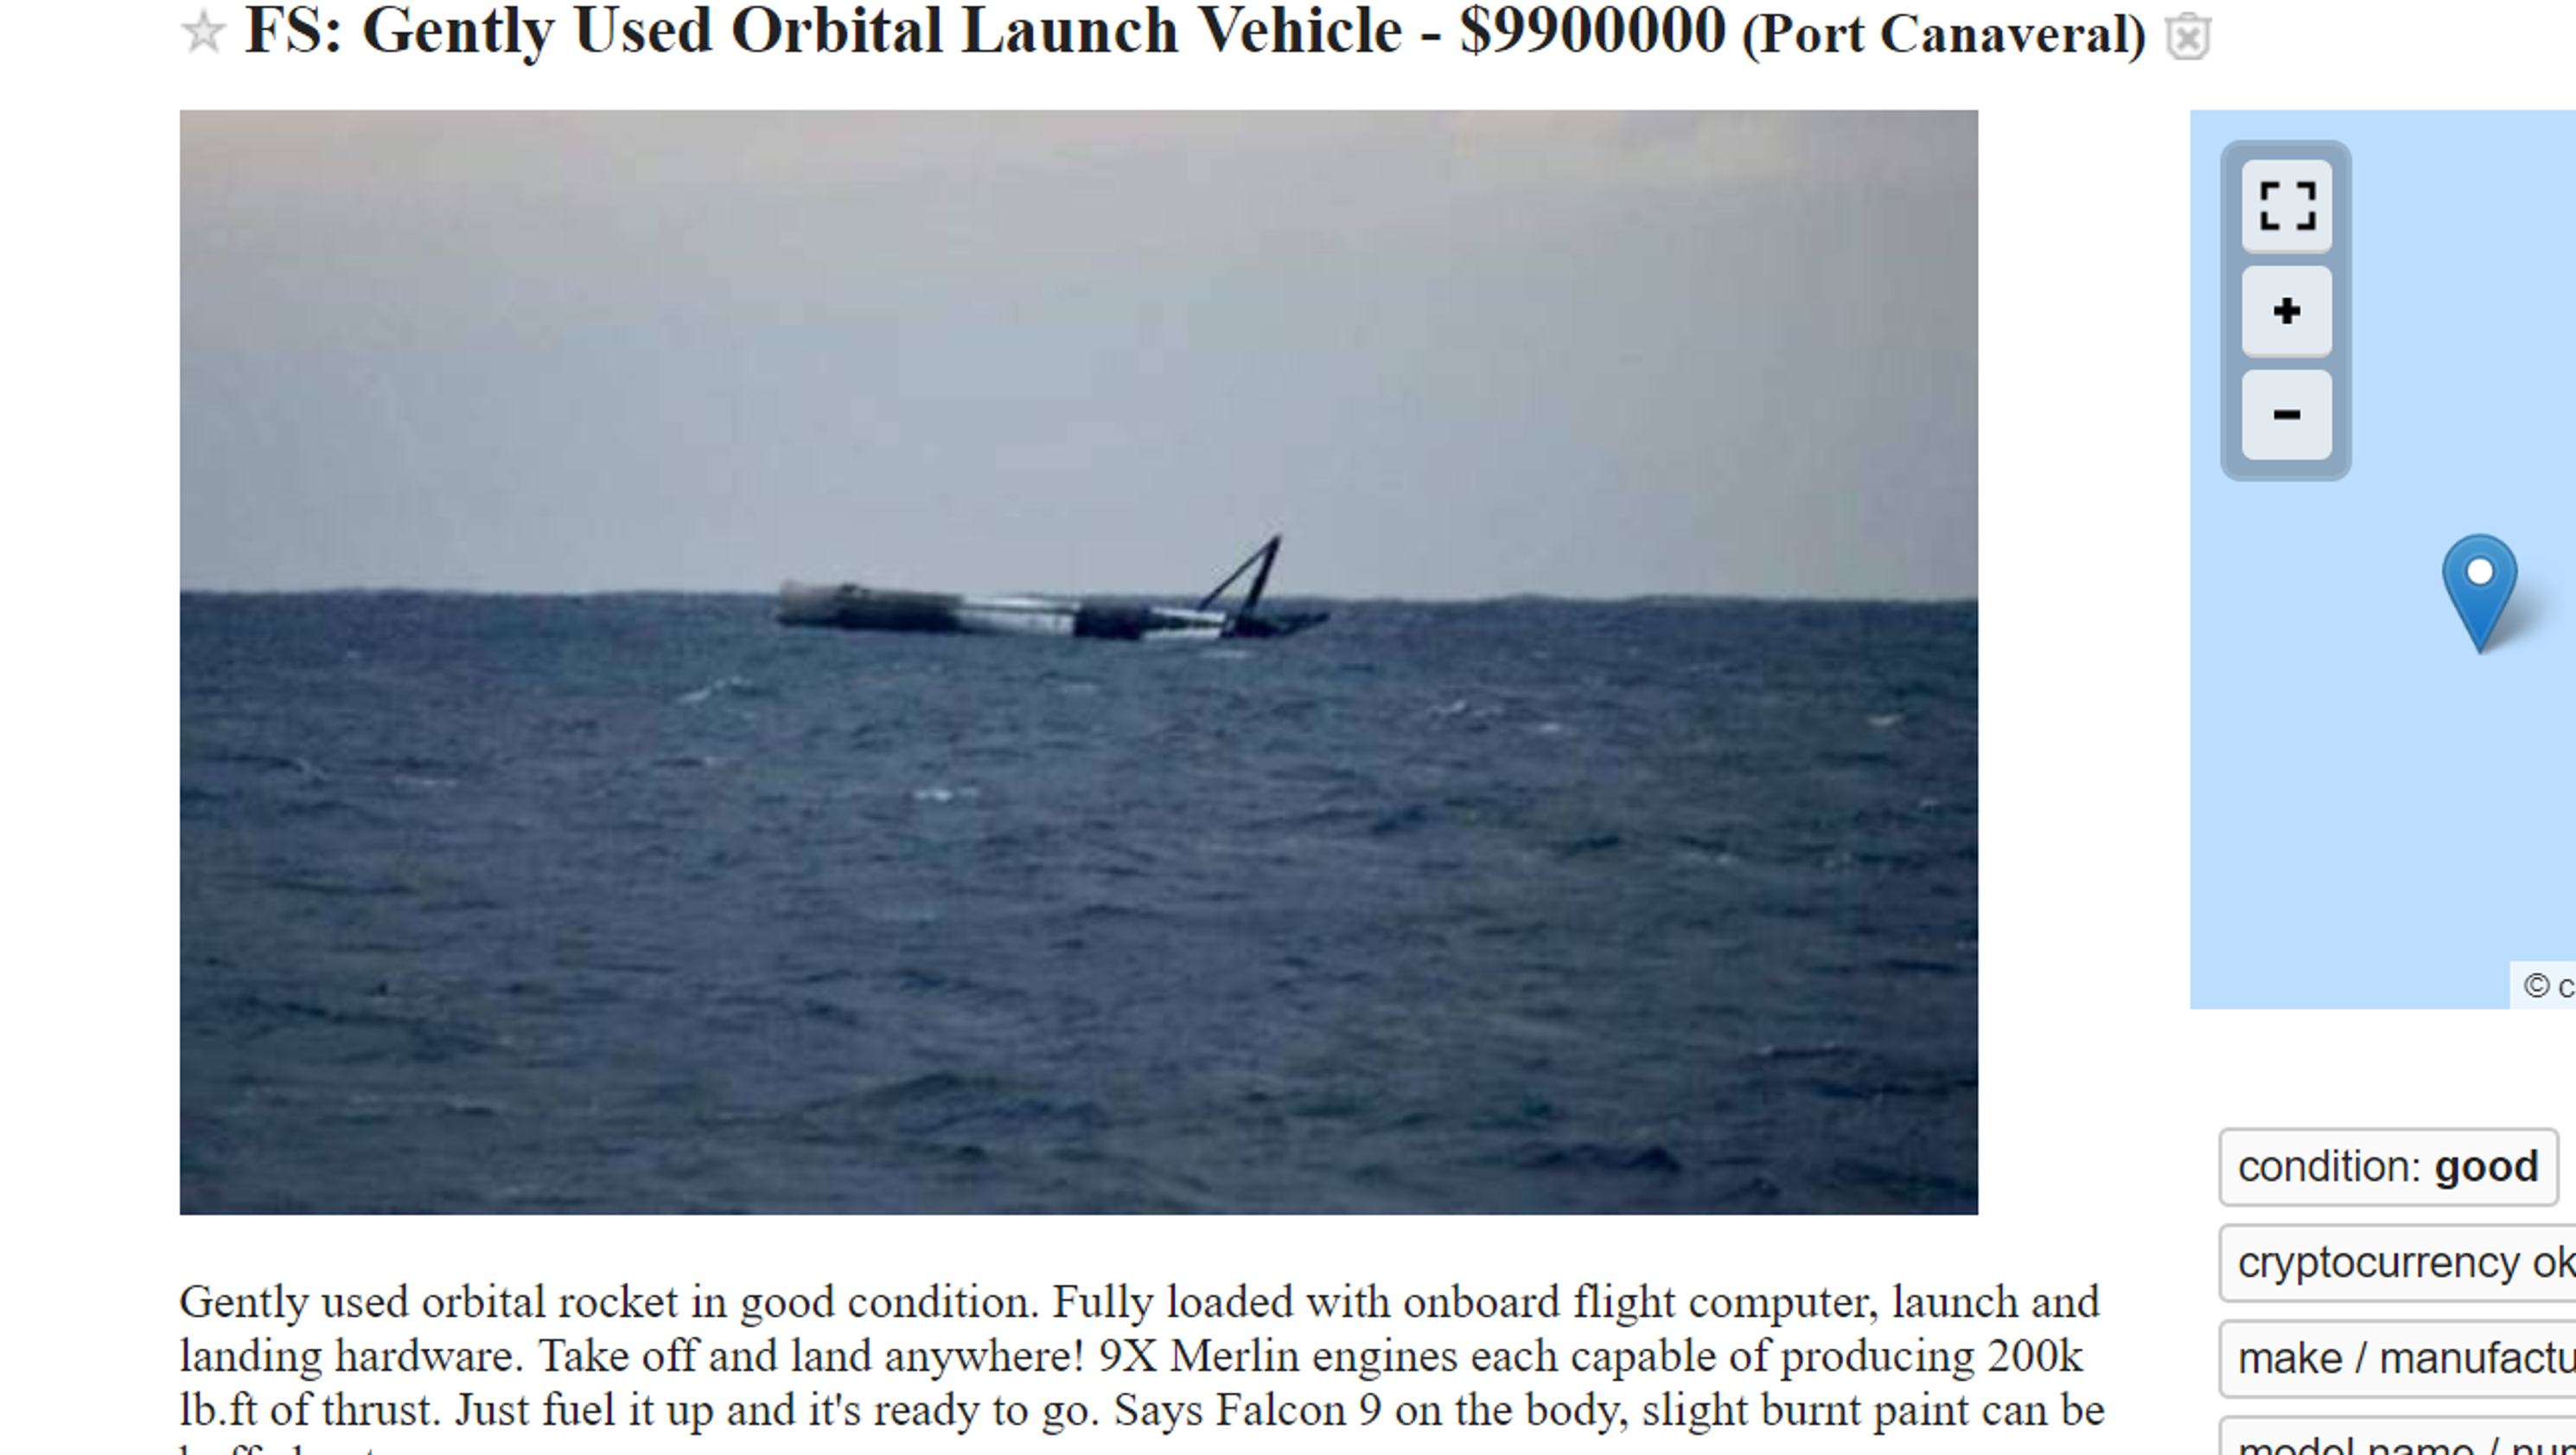 A Gently Used Spacex Rocket Is For Sale On Craigslist